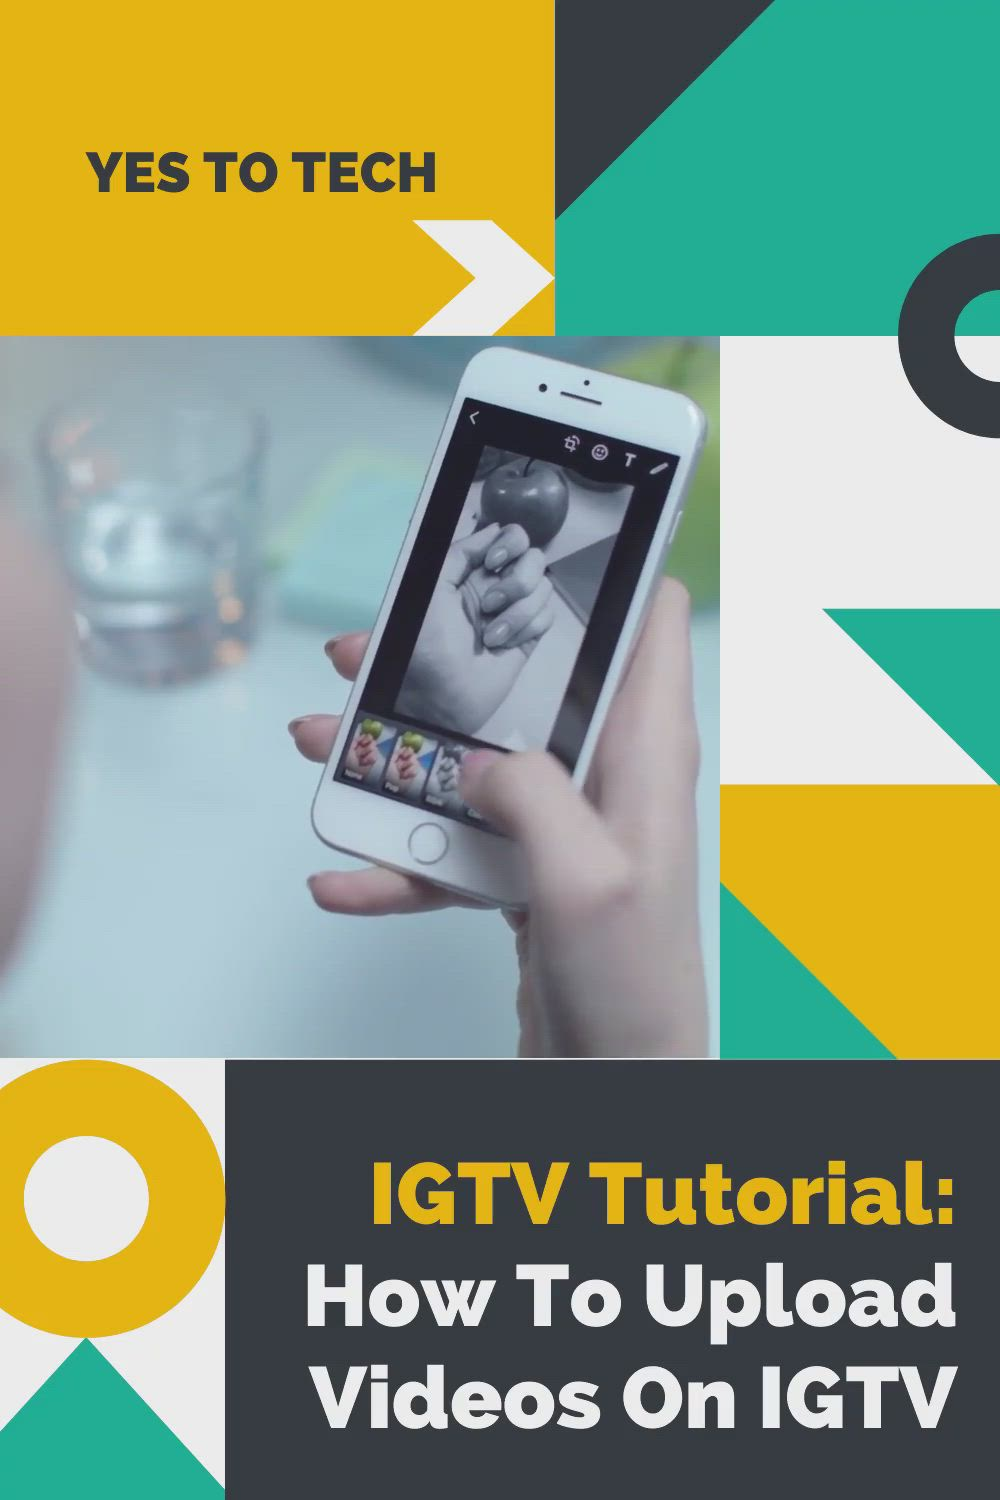 Igtv Tutorial How To Upload Videos On Igtv Video Video In 2021 Tutorial Instagram Content Calendar Videos